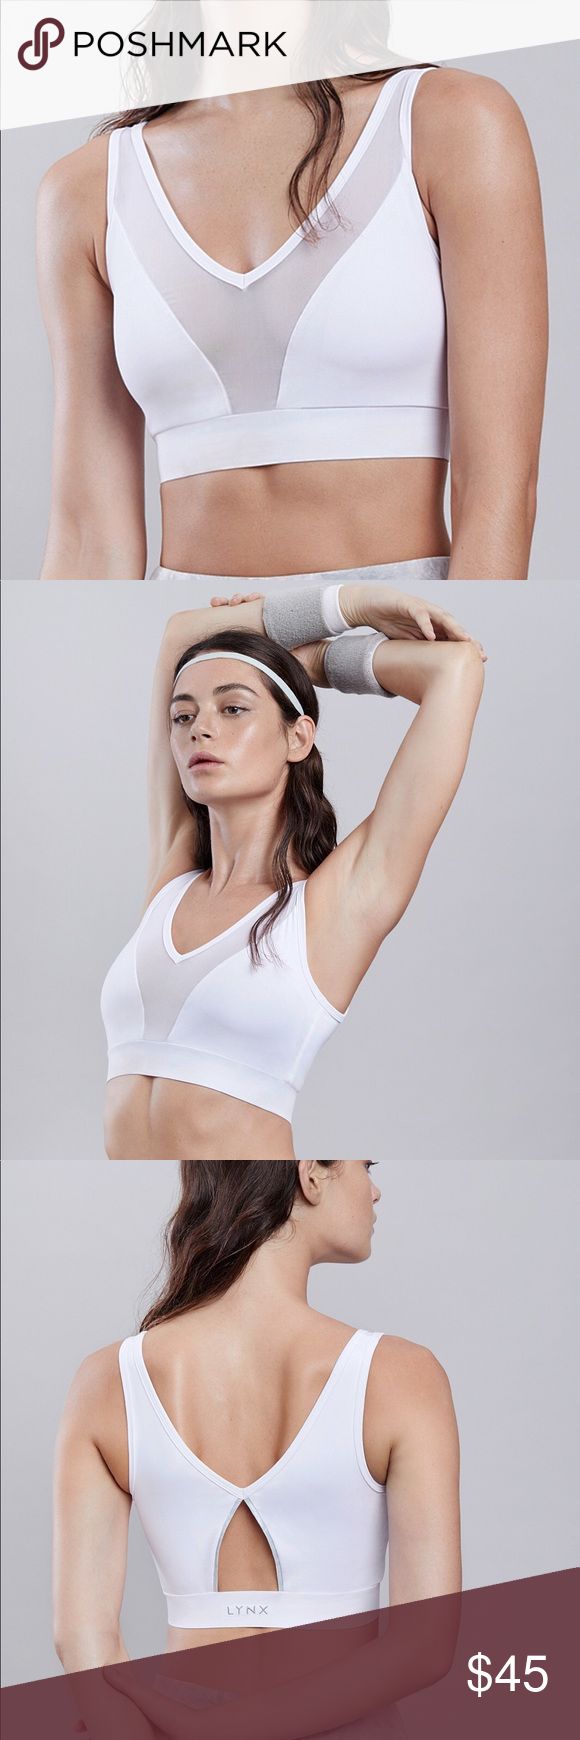 1642700318524 Lynx Active Lushky White Sports Bra Meshing It Up with Lushky sports bra.Featuring  in